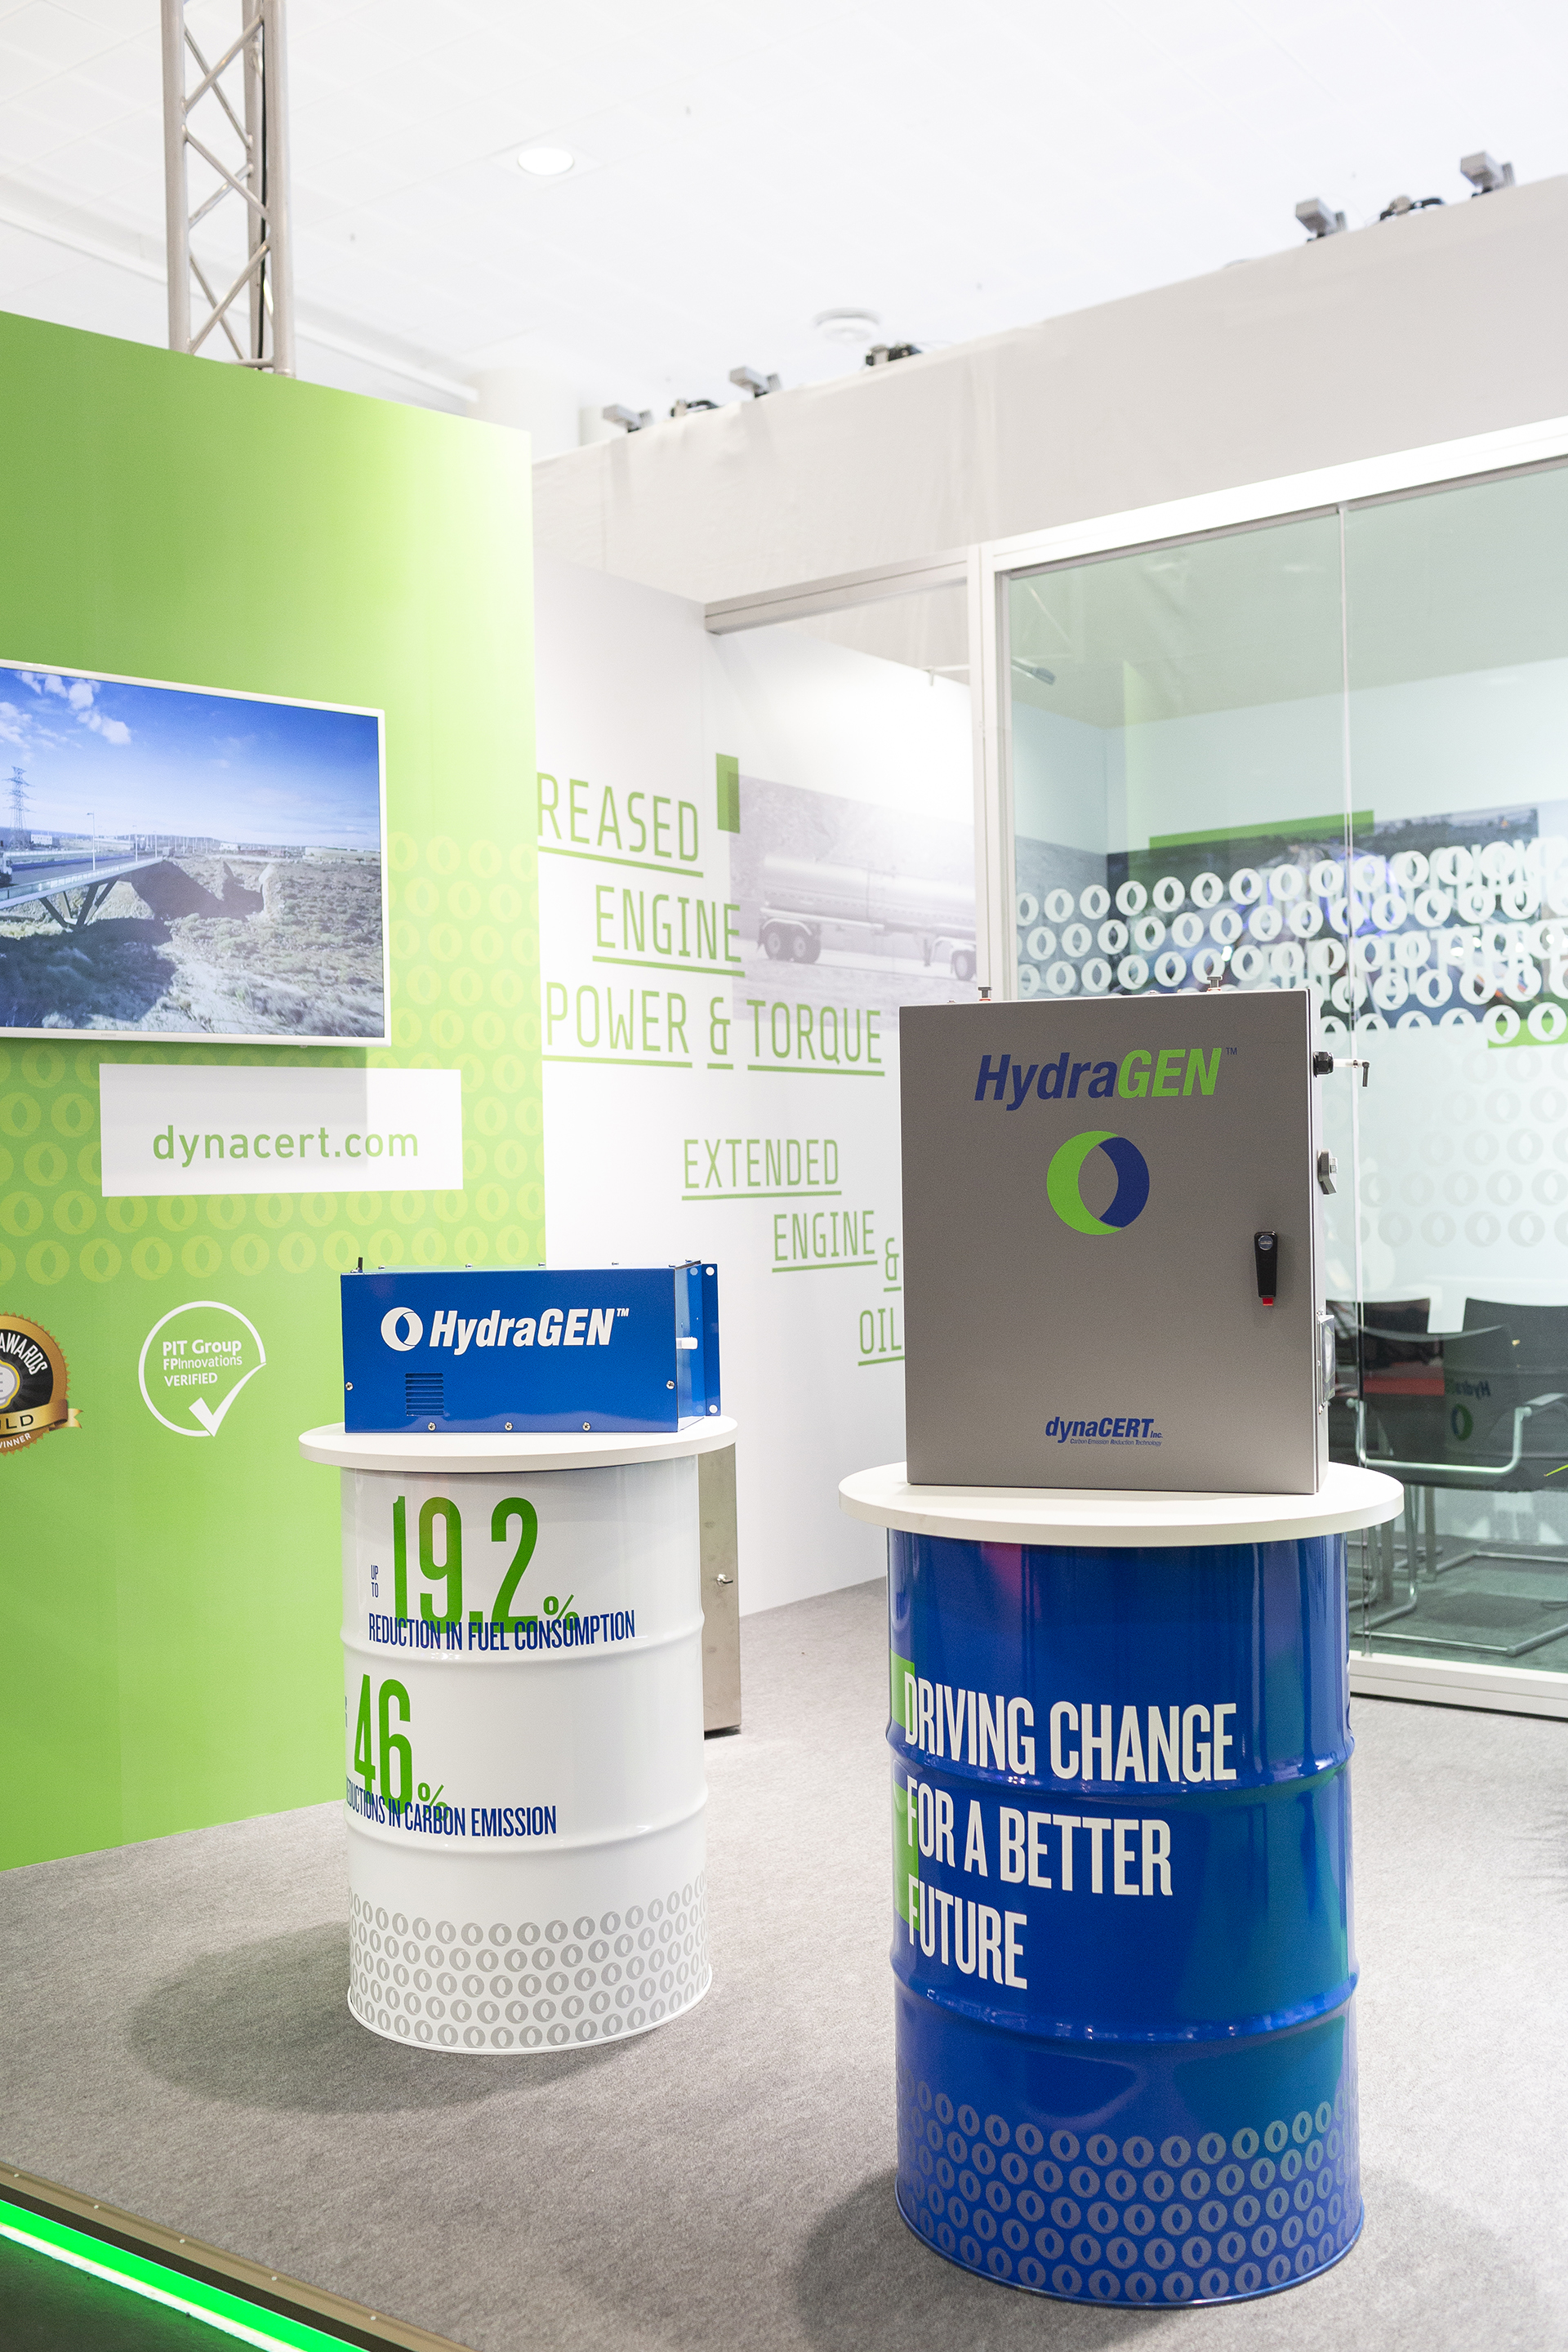 dynaCERT Obtains European Approval of its Hydrogen Technology